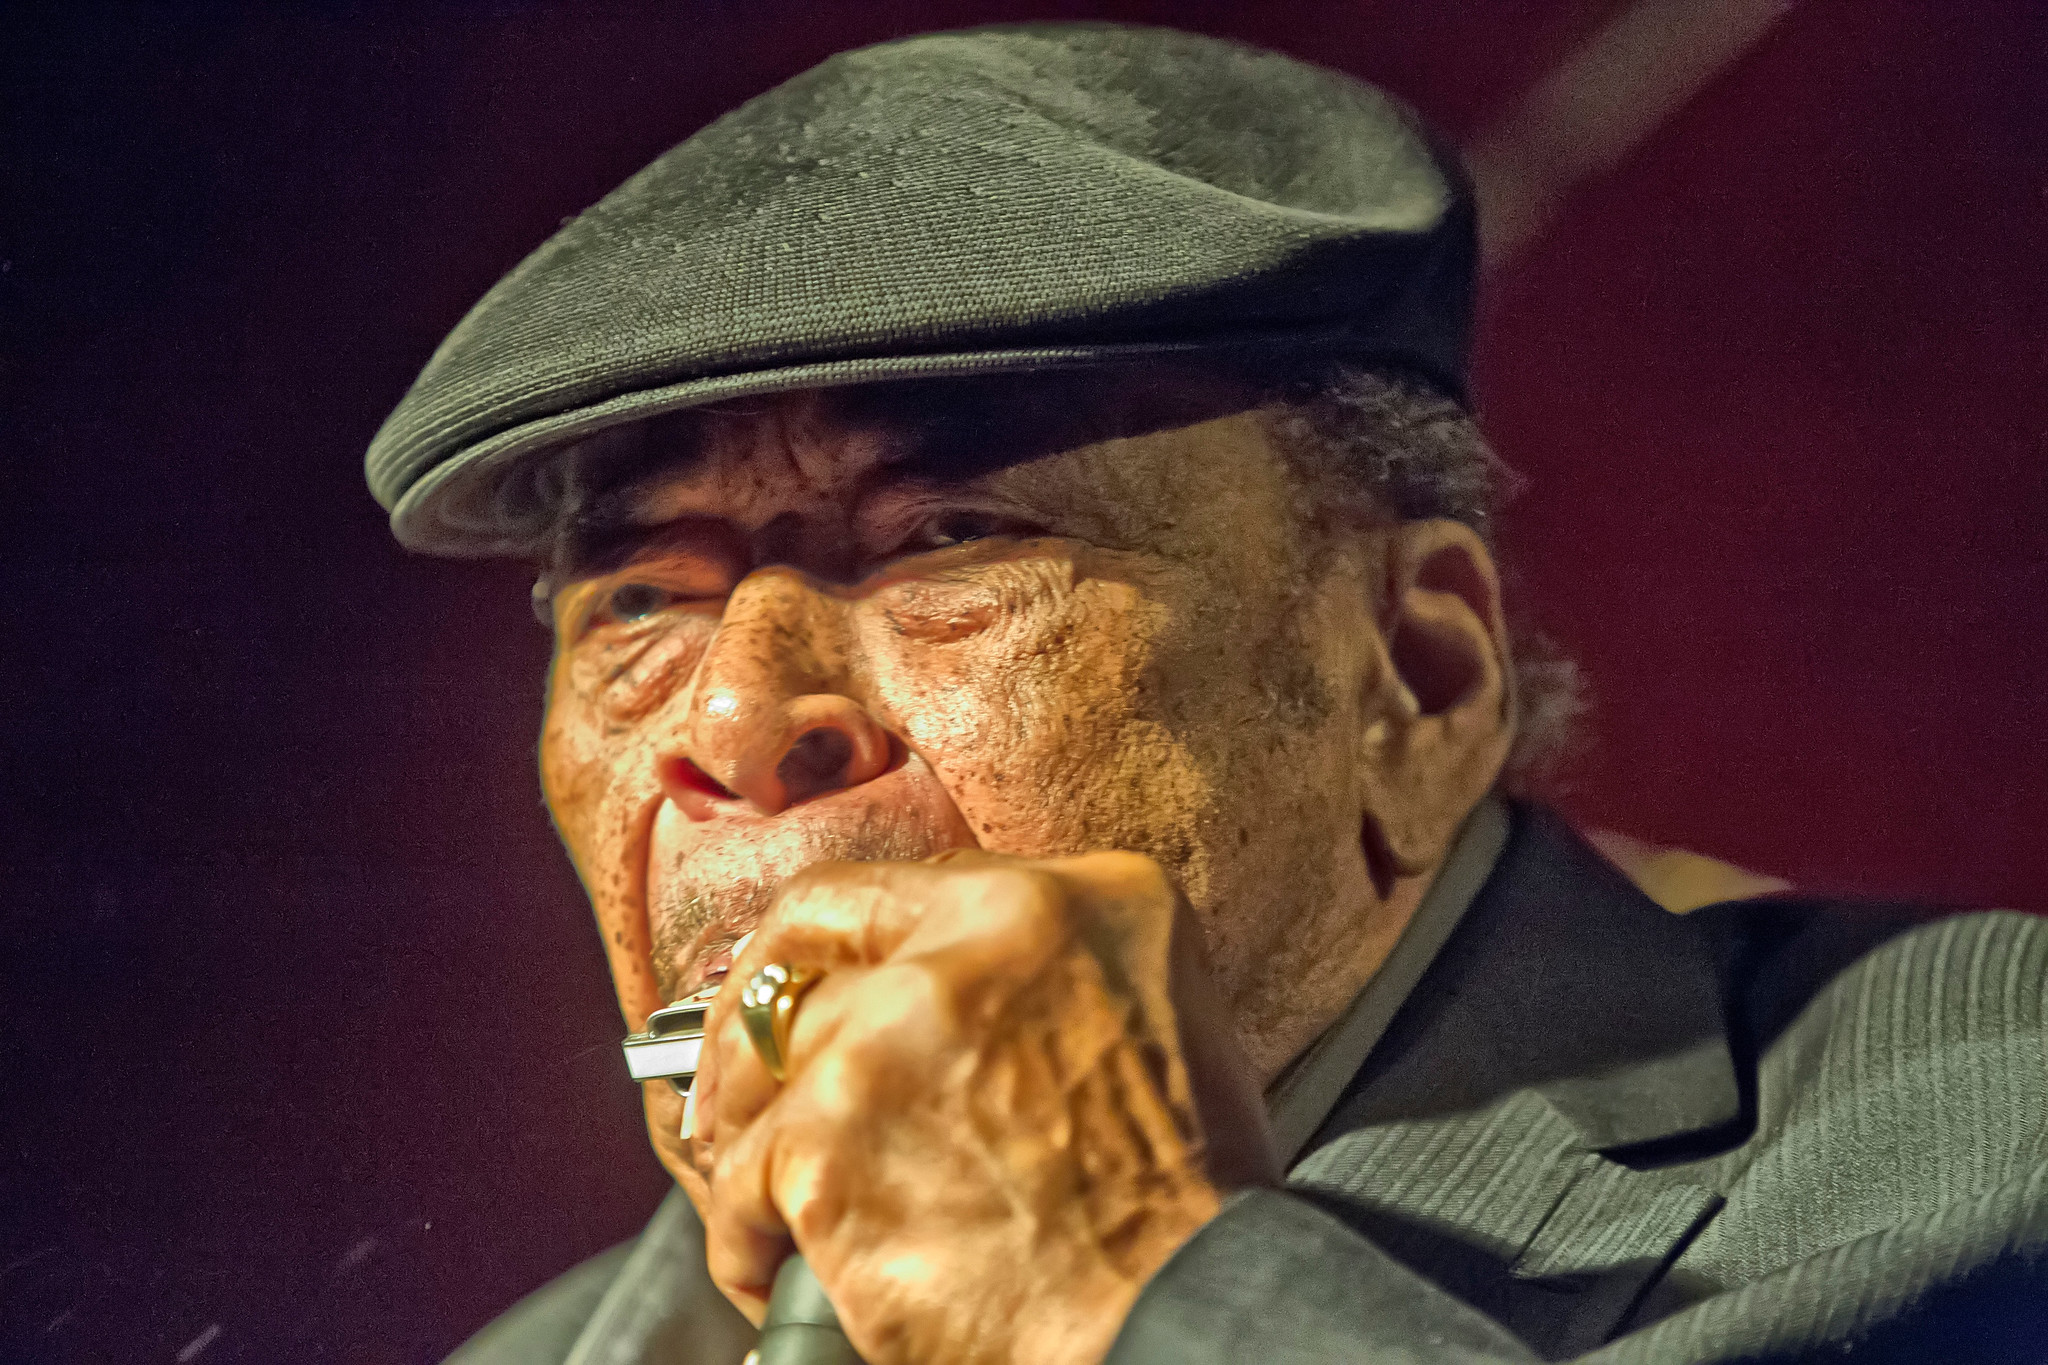 phot of James Cotton playing harp